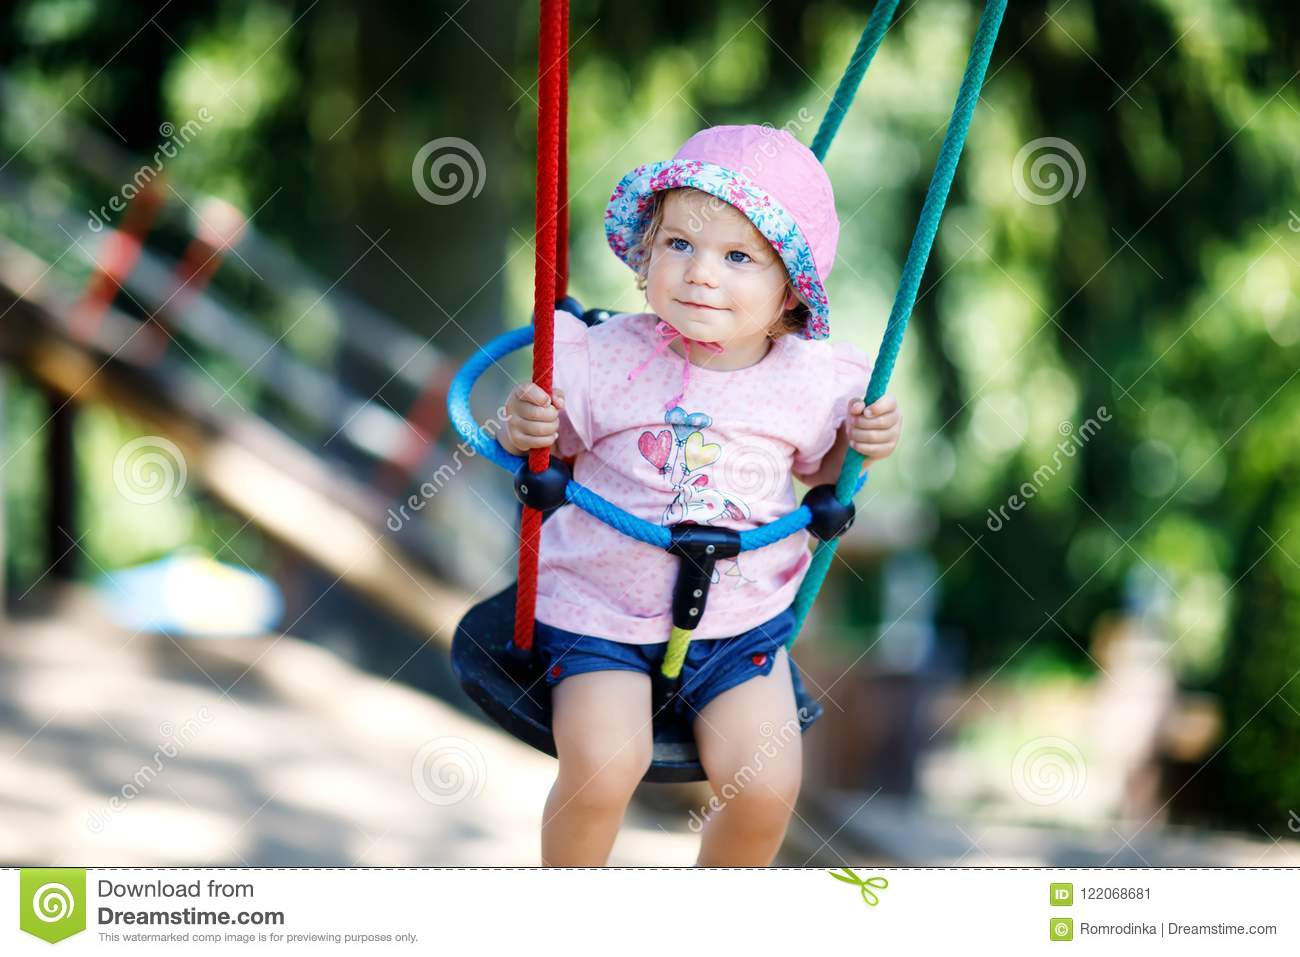 d40e9bbe4 Cute Adorable Toddler Girl Swinging On Outdoor Playground. Happy ...